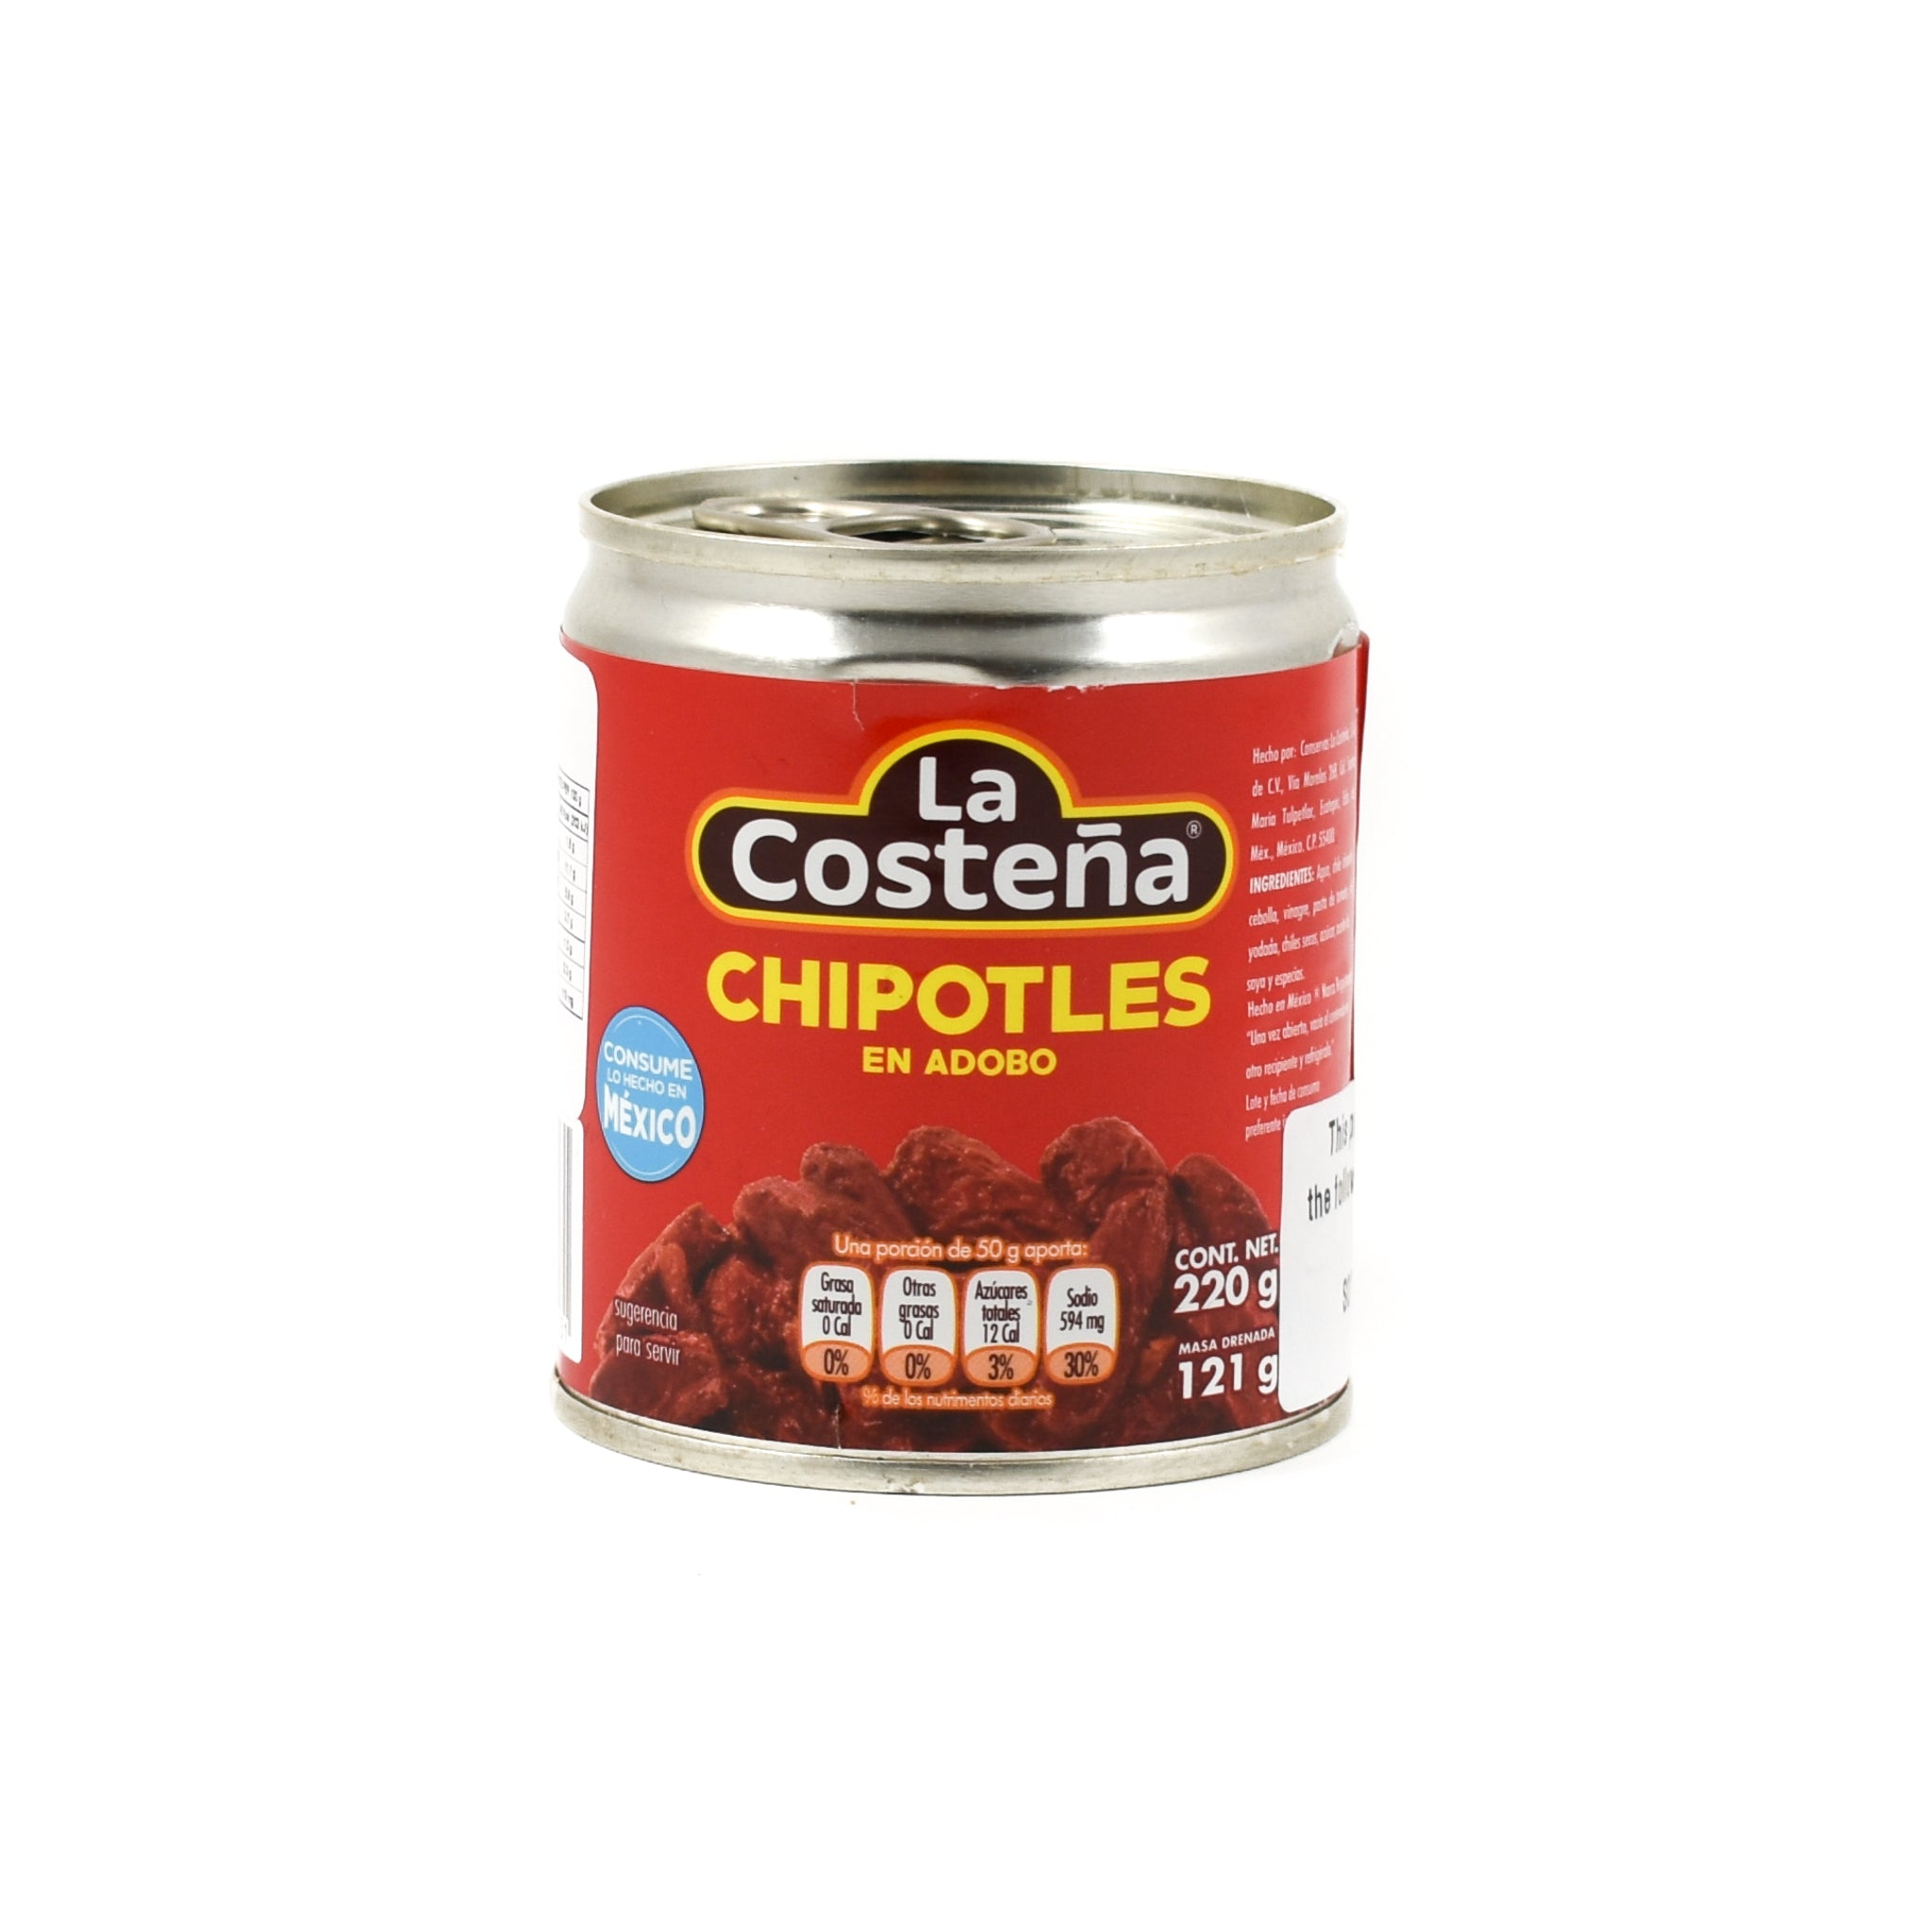 La Costena Chipotle Peppers in Adobo Sauce 220g Ingredients Sauces & Condiments American Sauces & Condiments Mexican Food